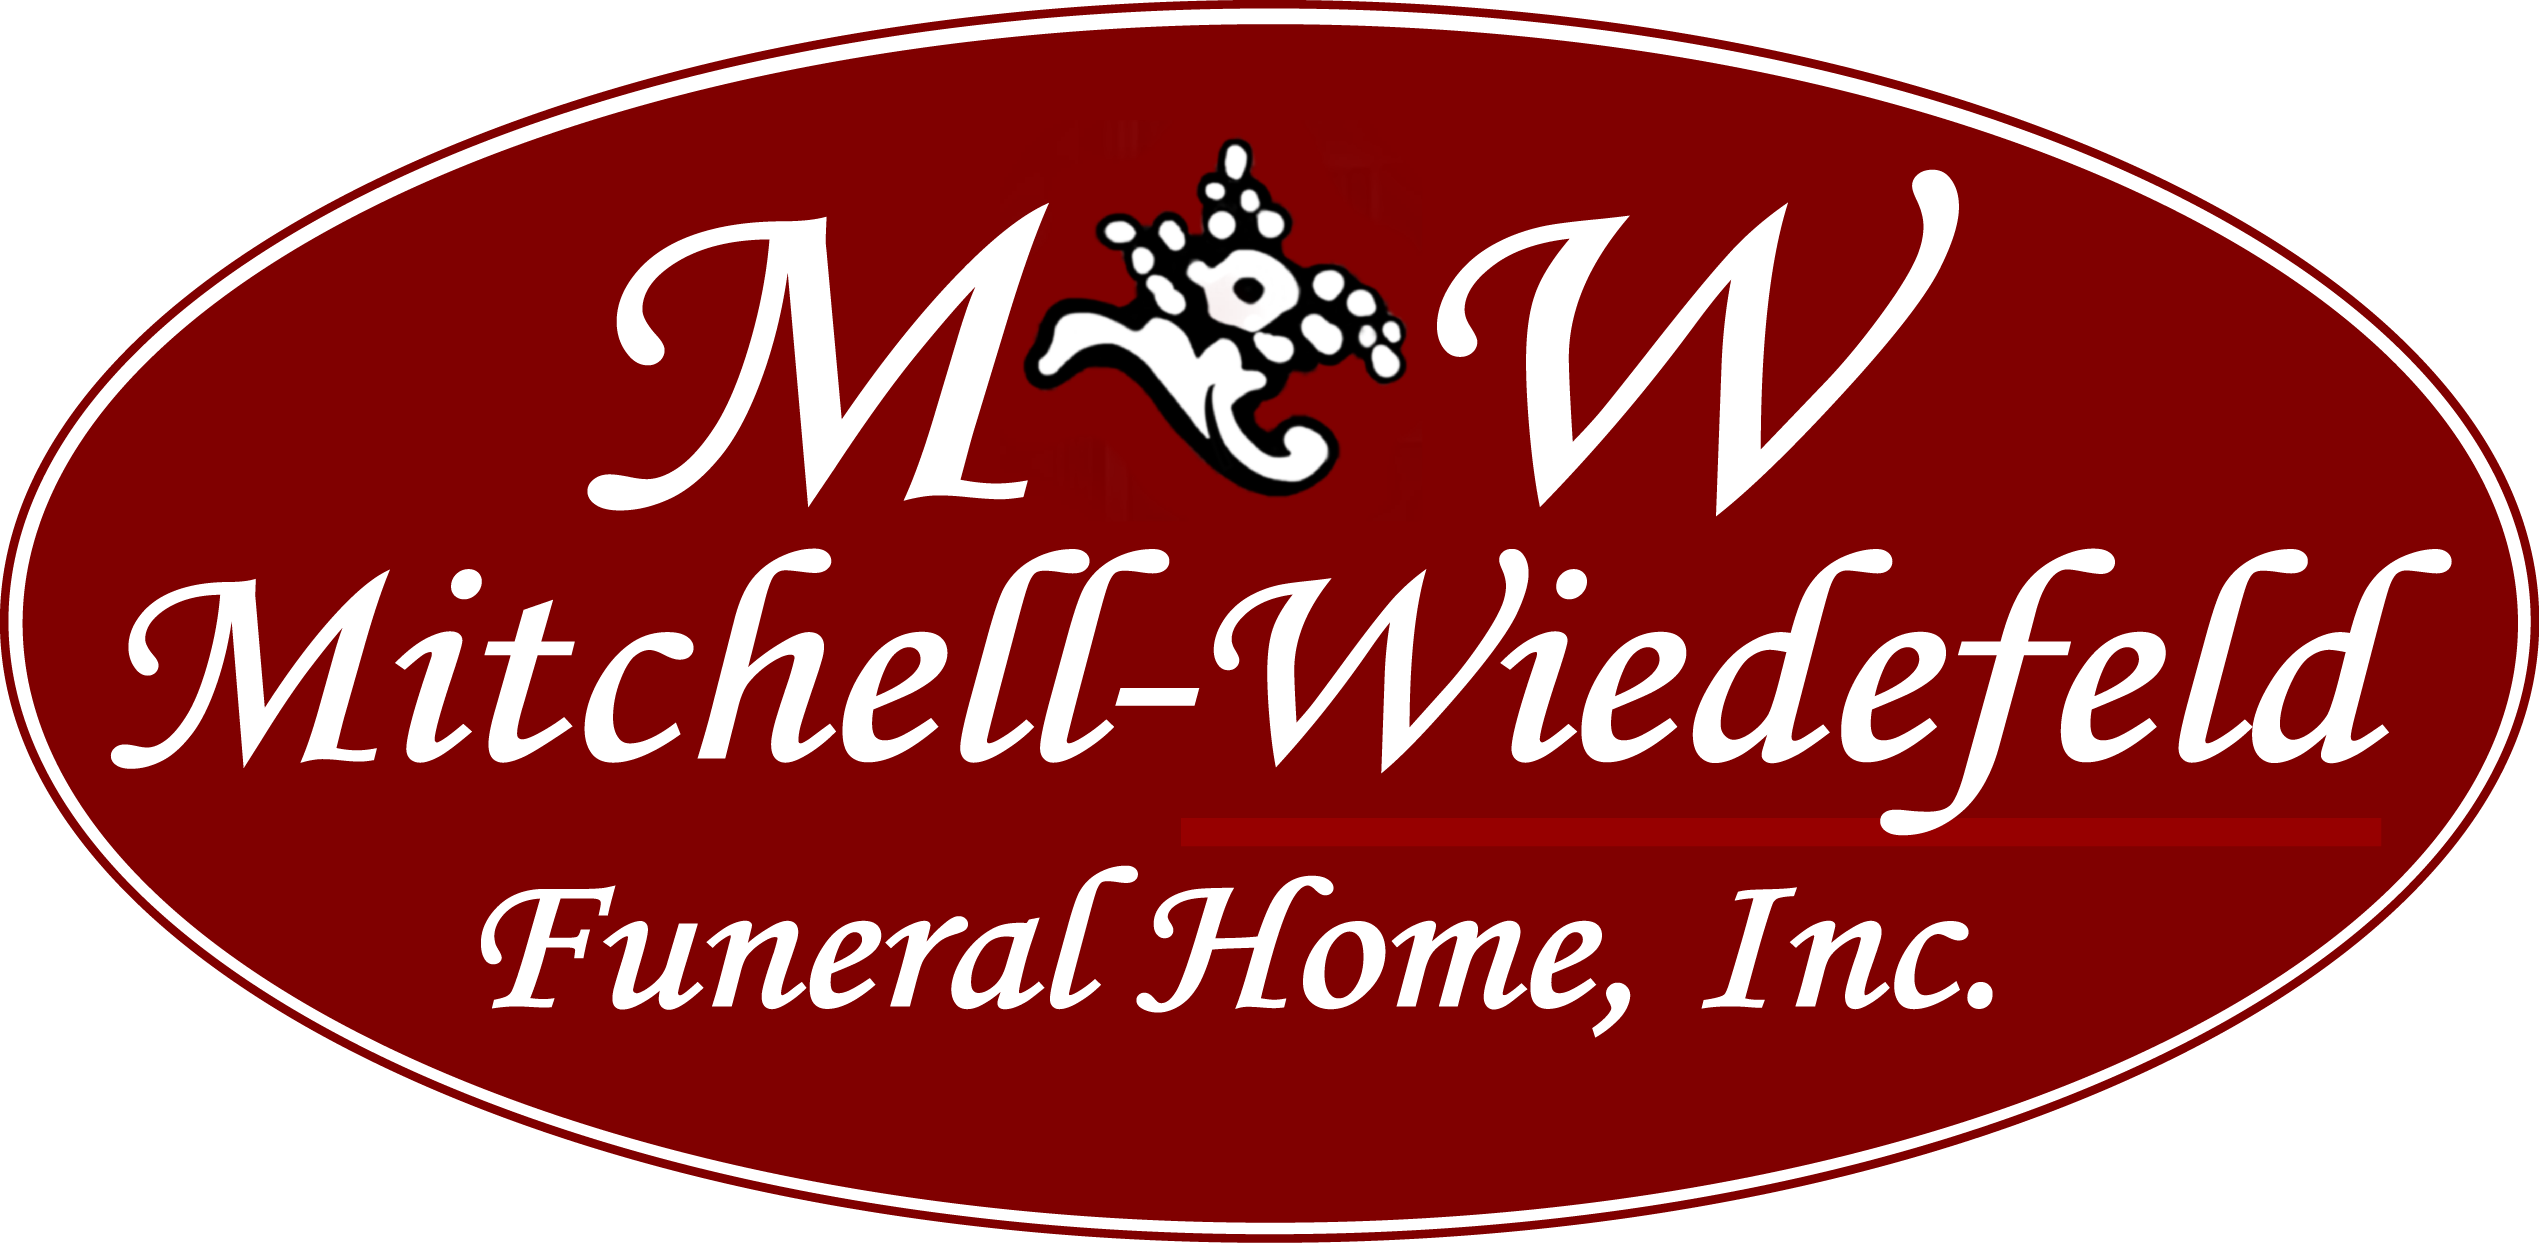 Mitchell-Wiedefeld Funeral Home, Inc.